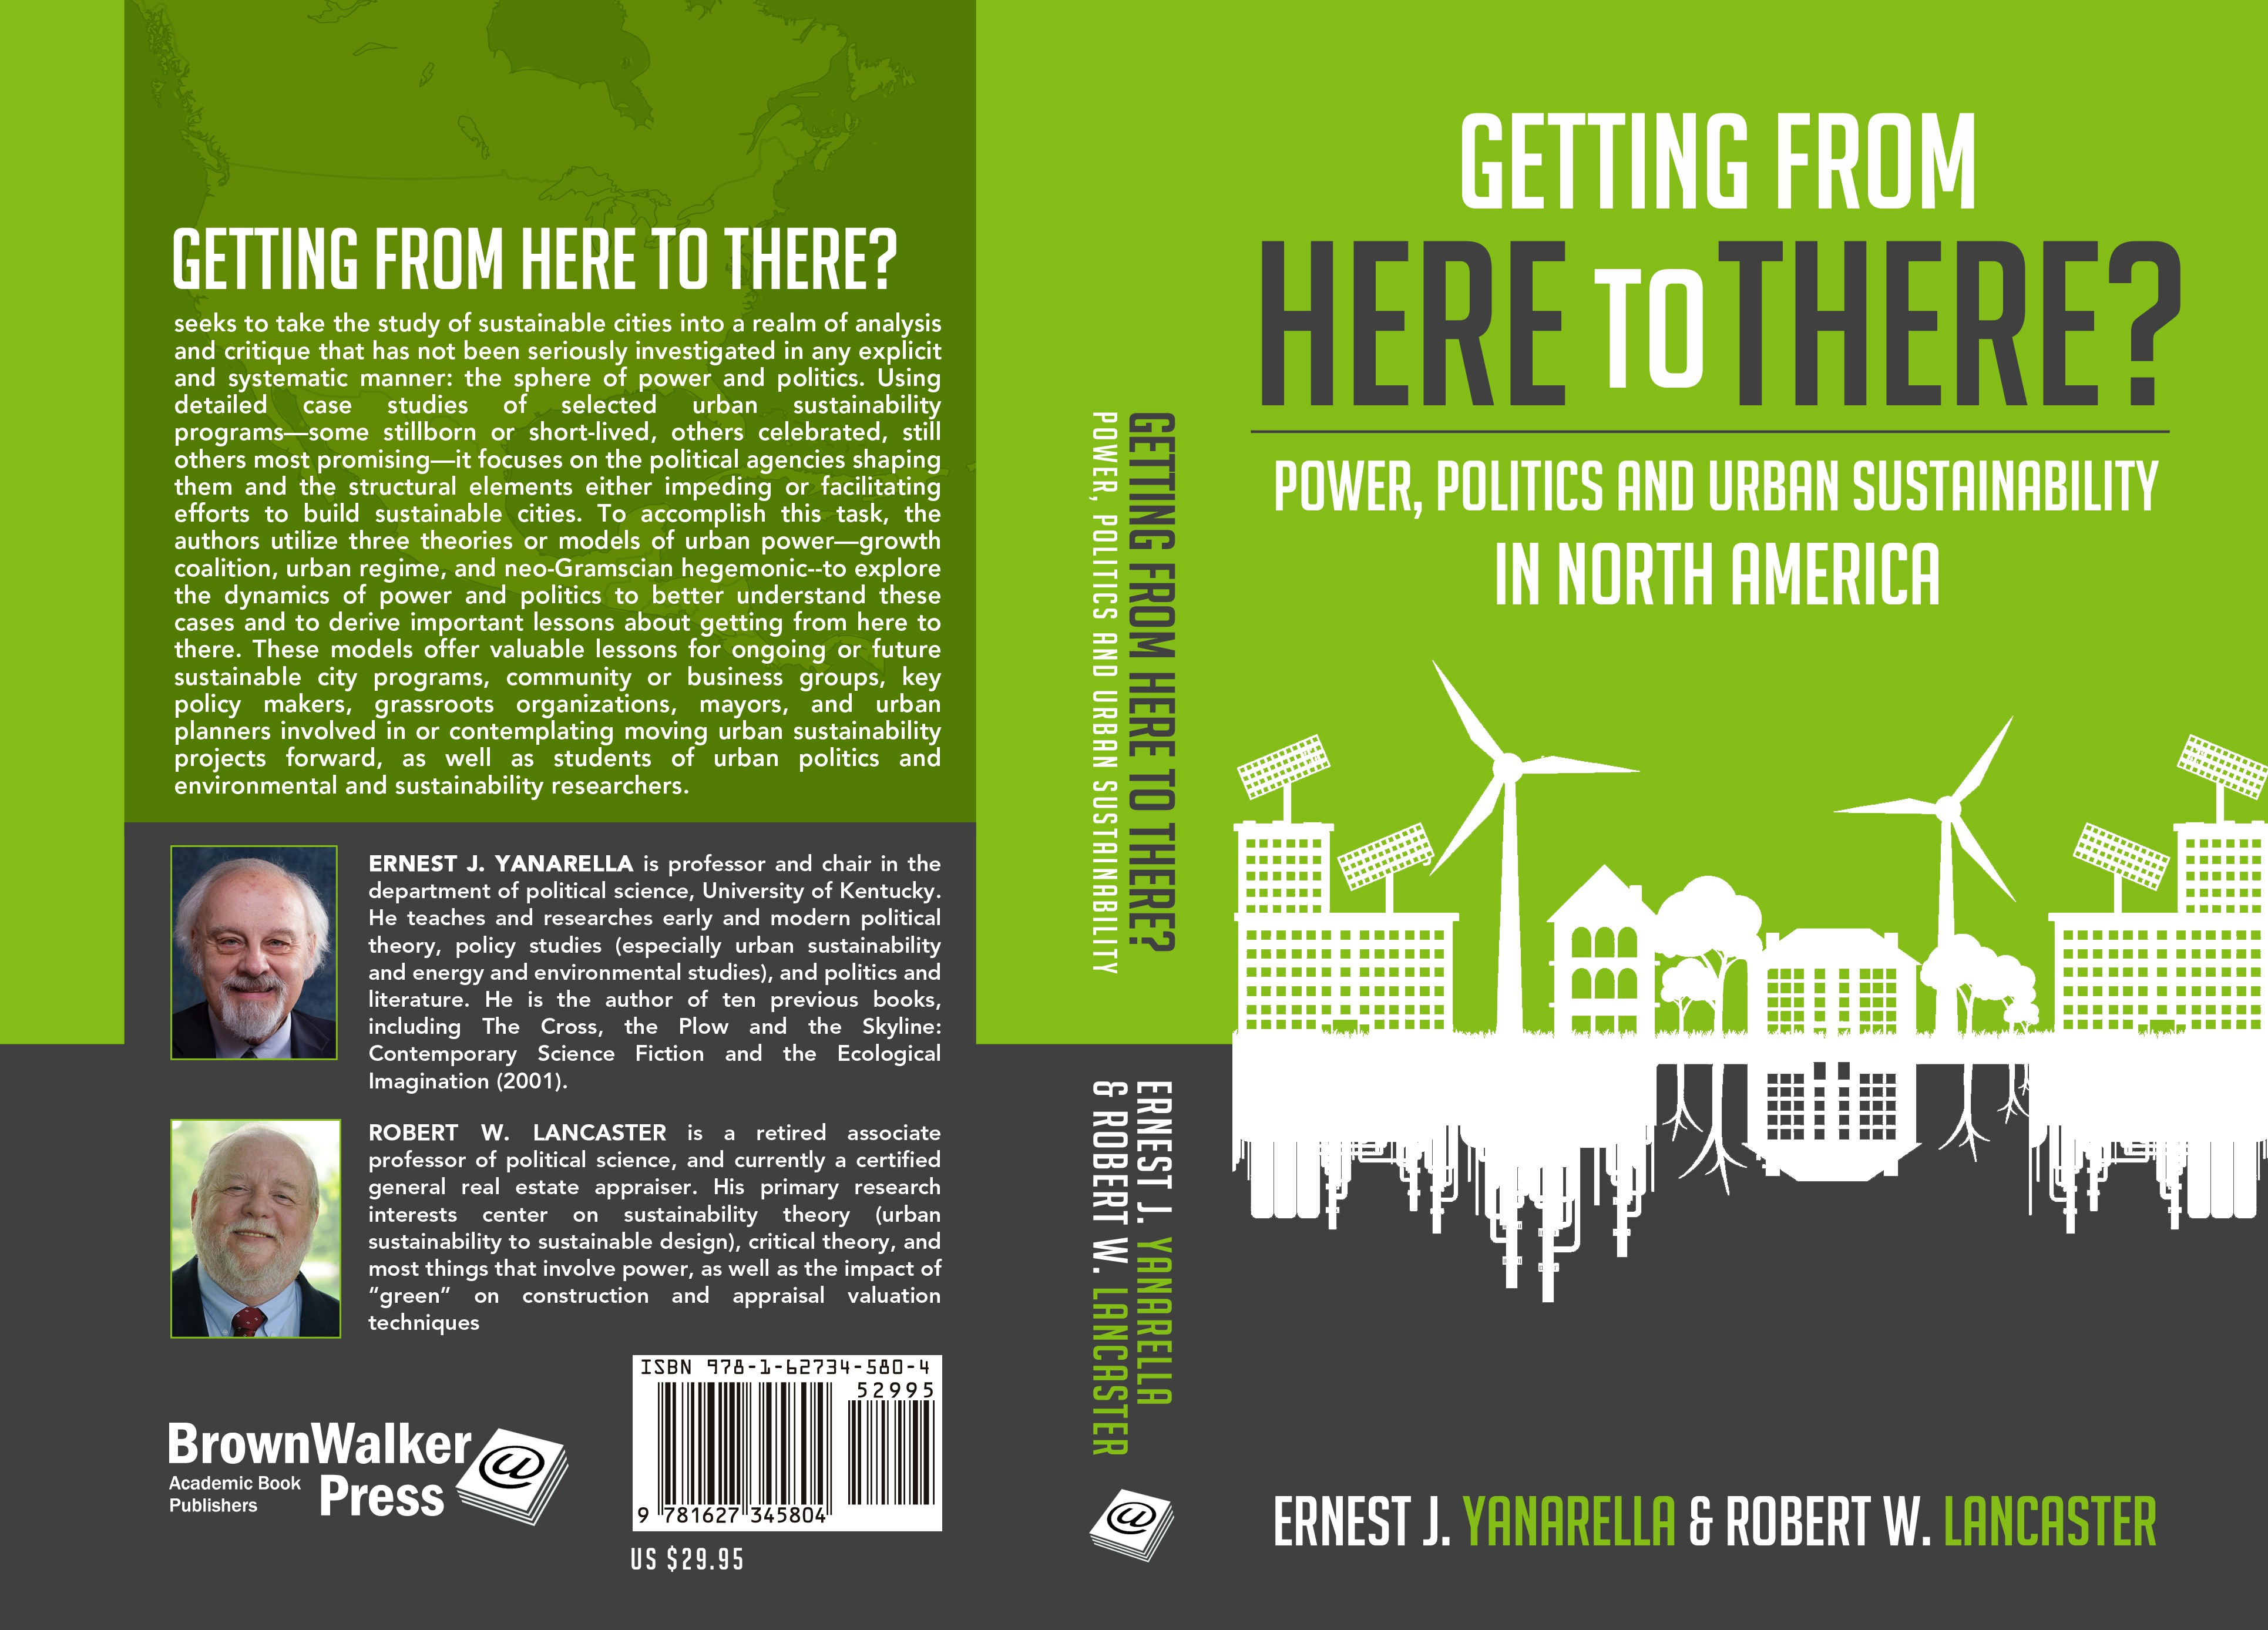 Academic book cover: Getting from Here to There? Power, Politics and Urban Sustainability in North A